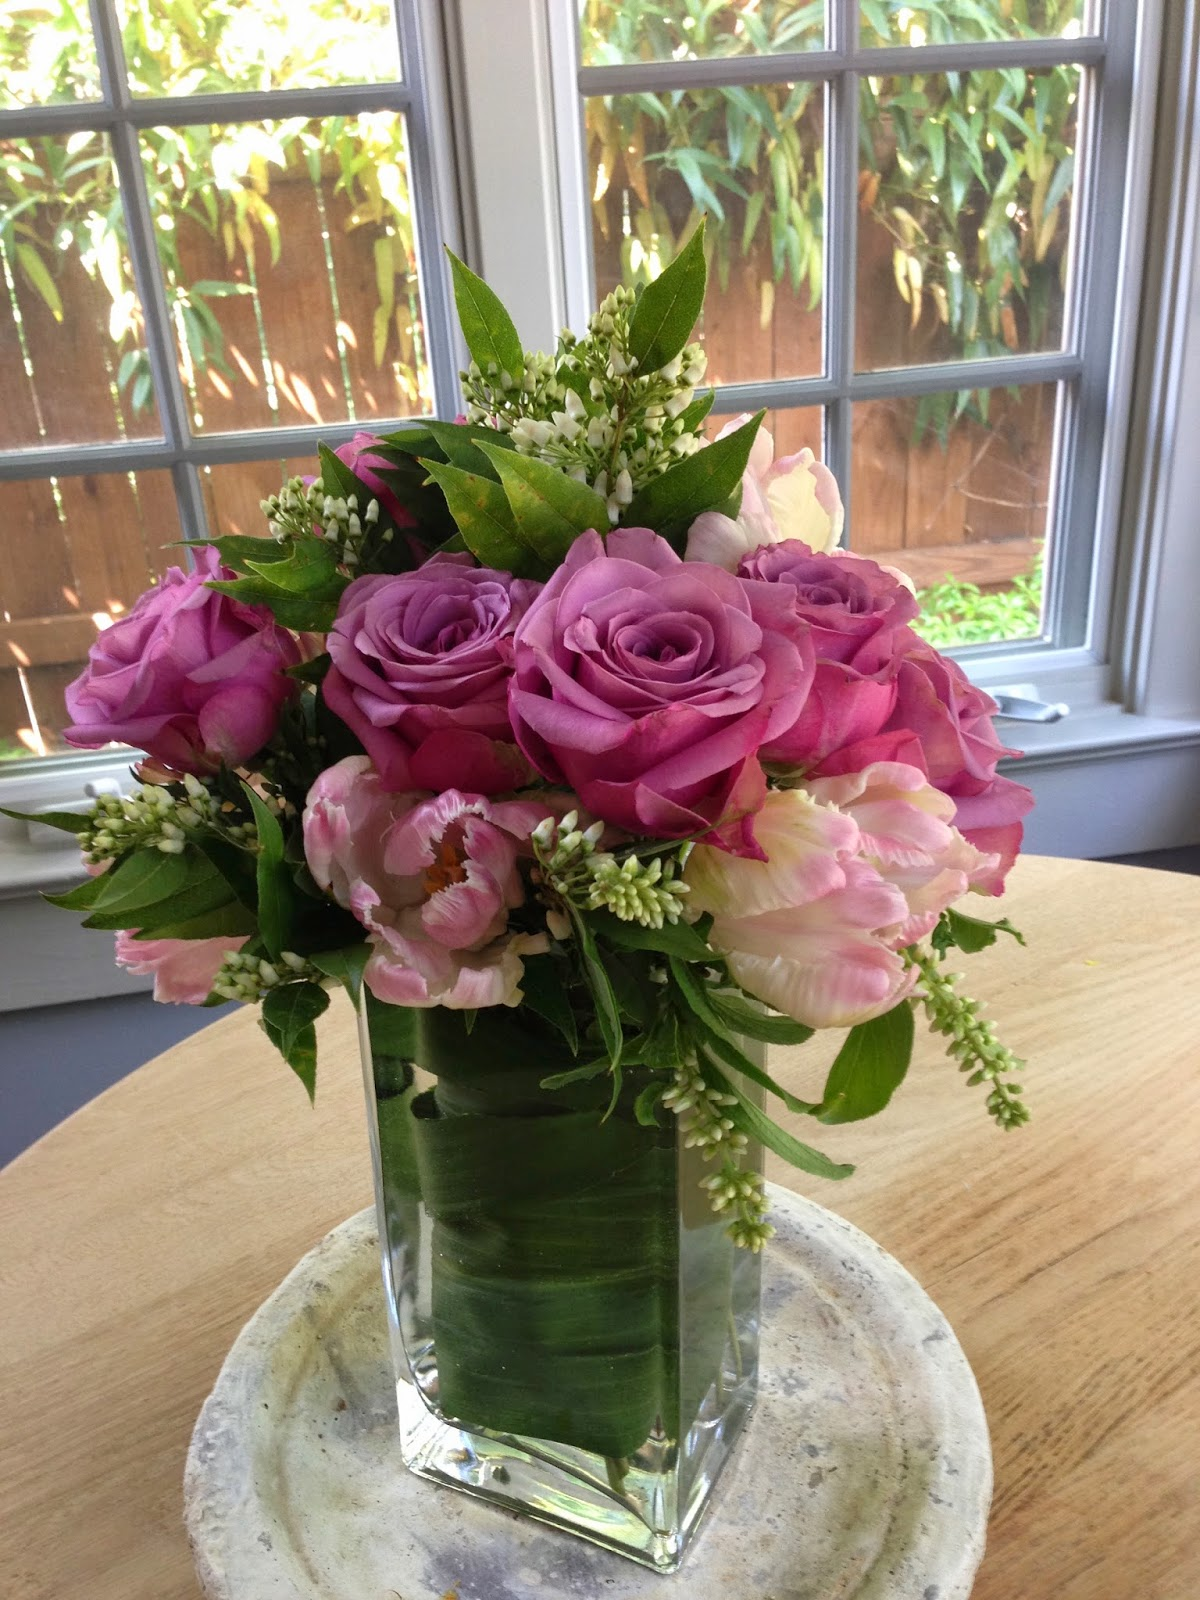 Bluemopheads Floral Design How To Line A Clear Vase Like A Pro